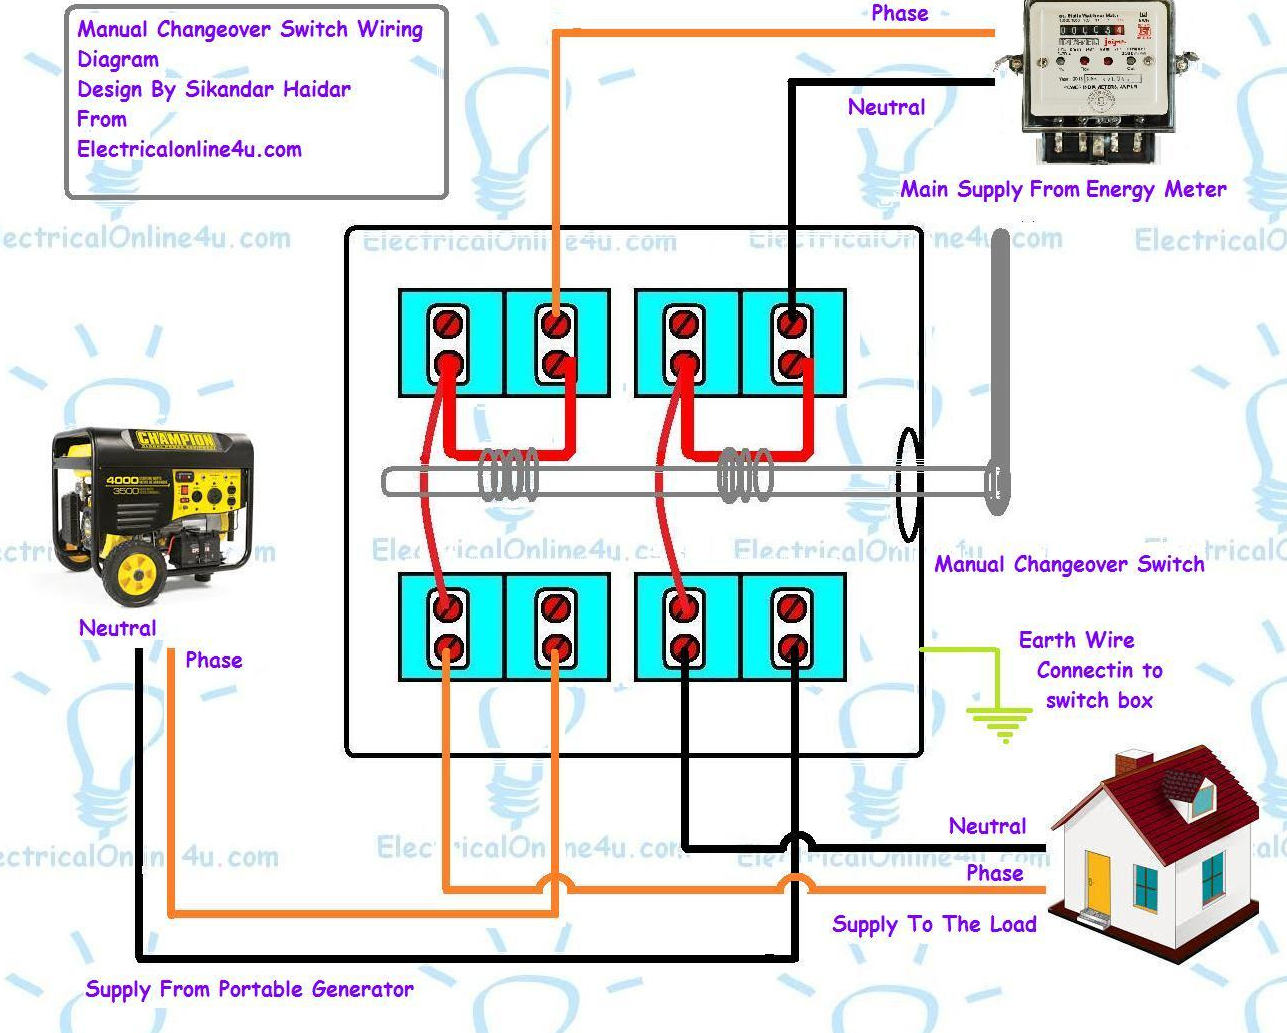 manual changeover switch wiring diagram for portable generator m 3 Phase Manual Transfer Switch manual changeover switch wiring diagram for portable generator